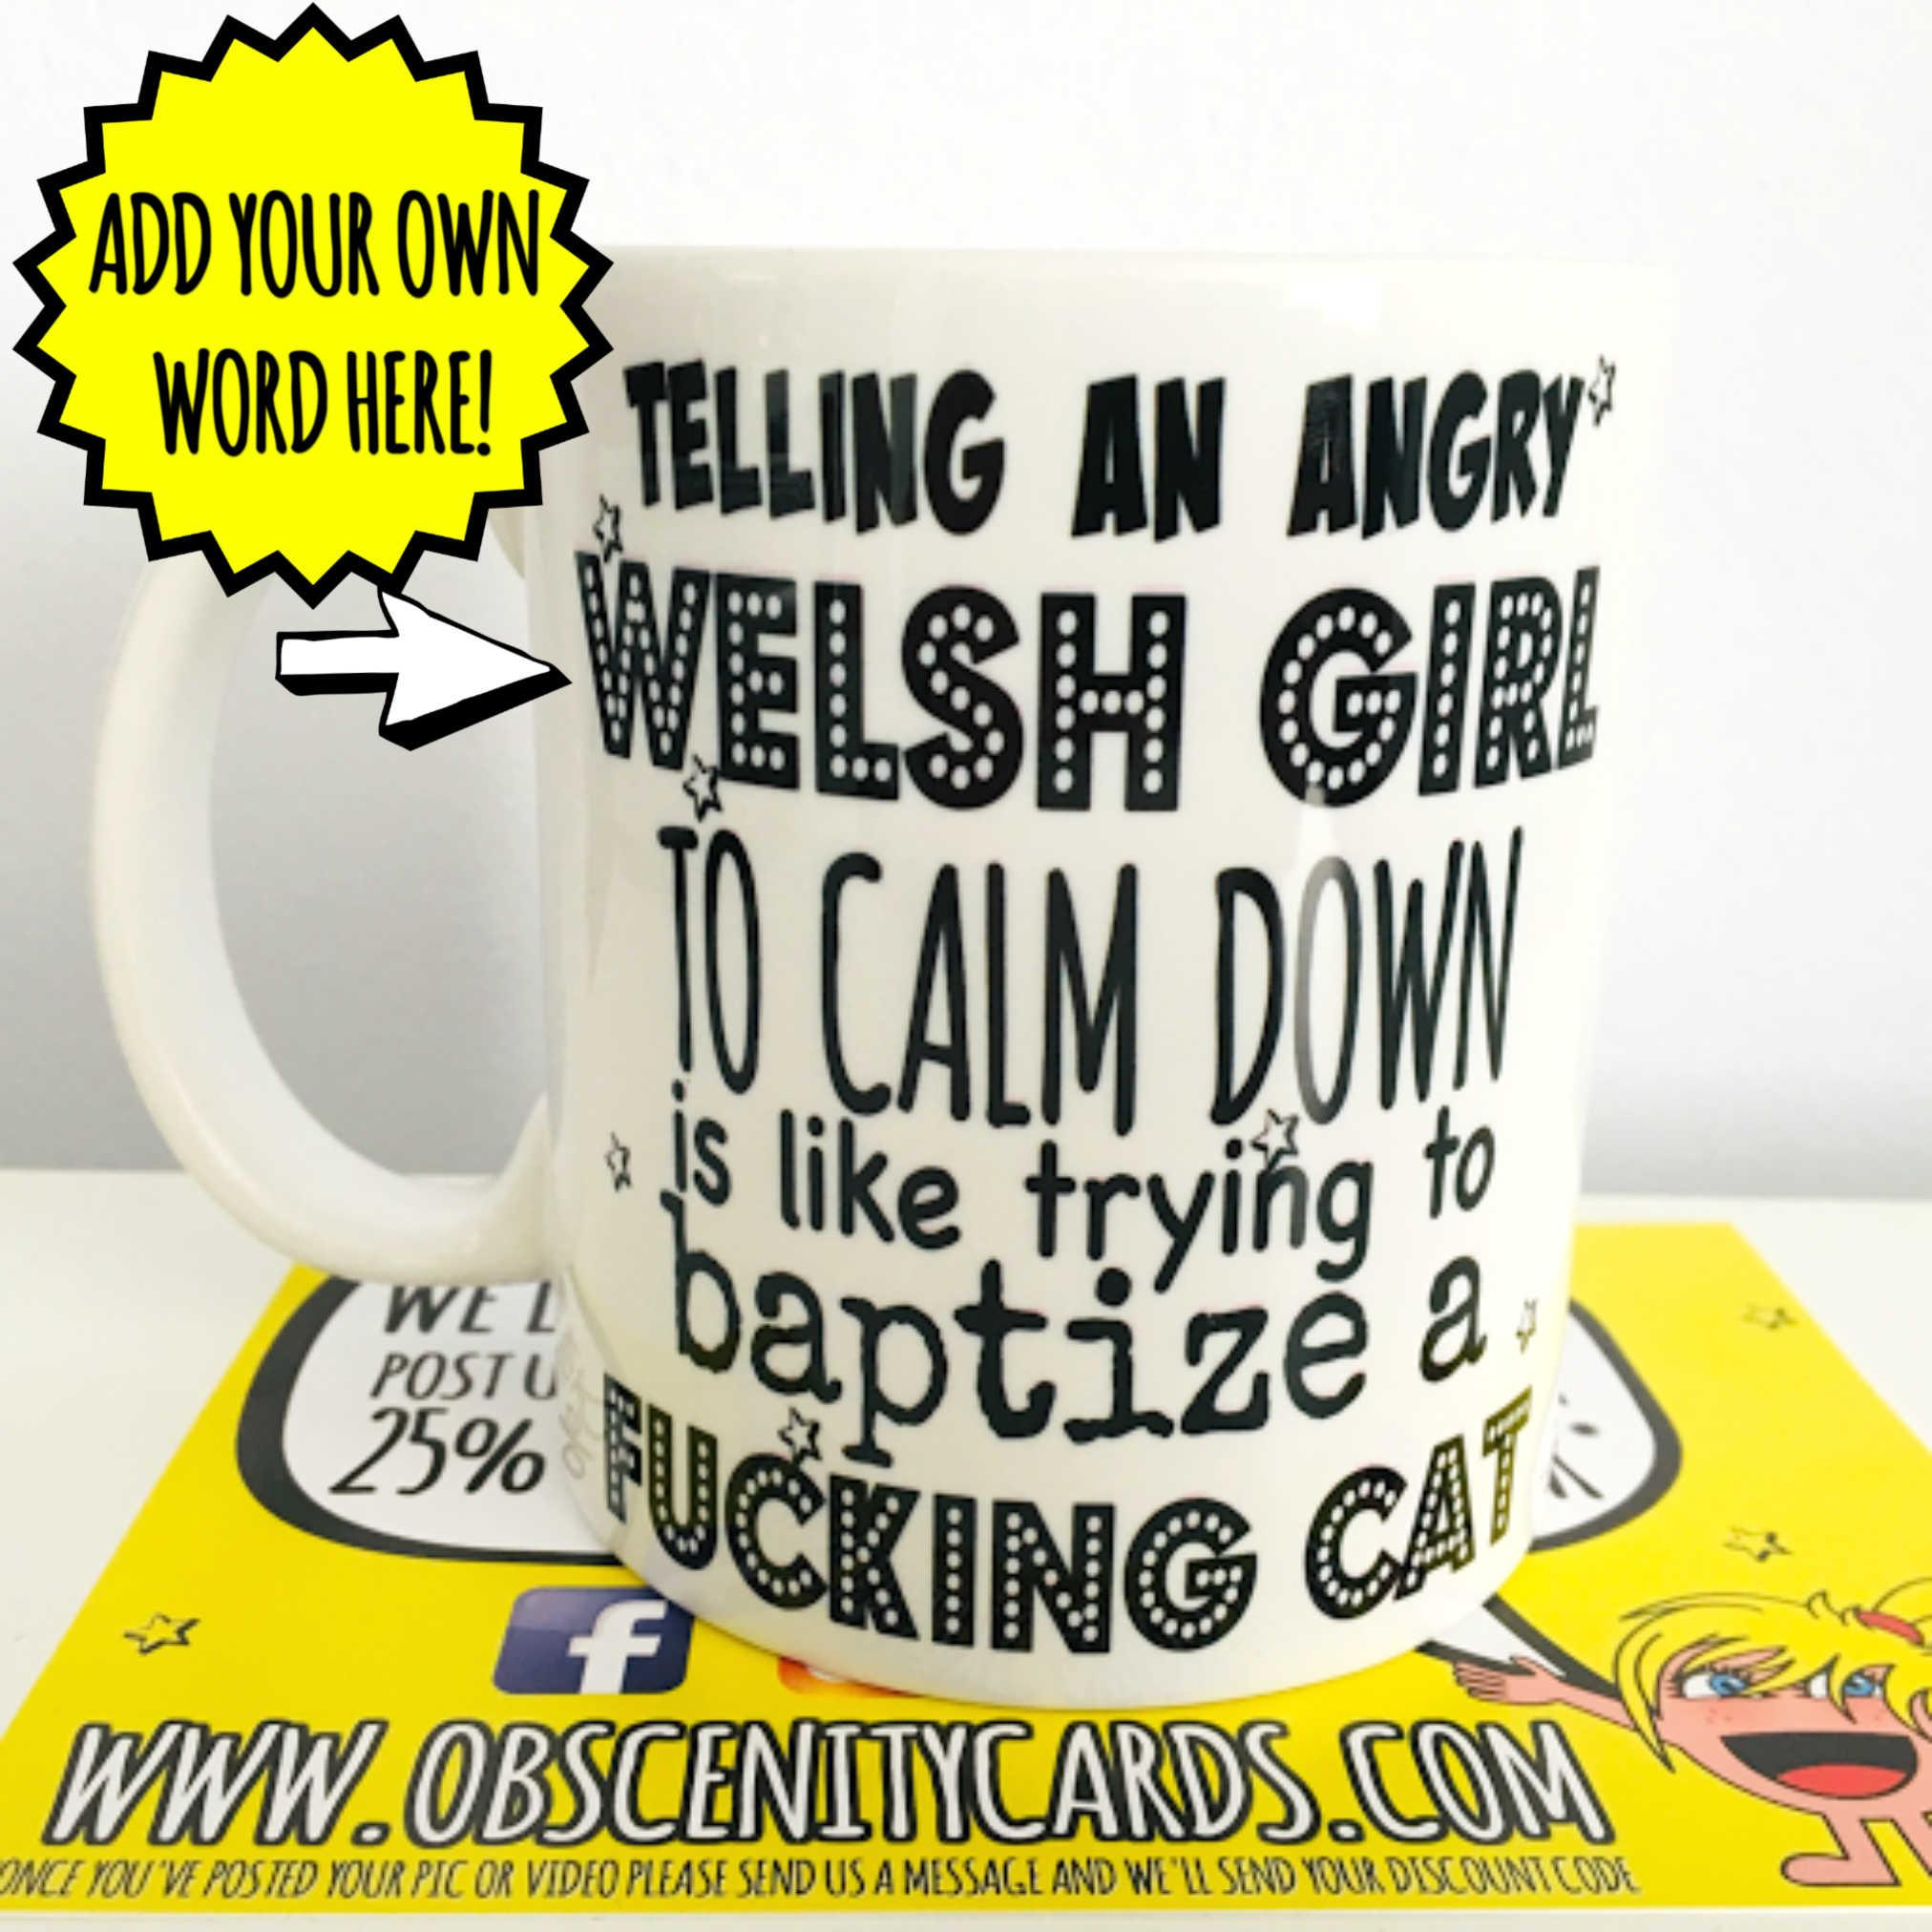 TELLING AN ANGRY GIRL TO CALM DOWN IS LIKE TRYING TO BAPTIZE A FUCKING CAT! MUG / CUP